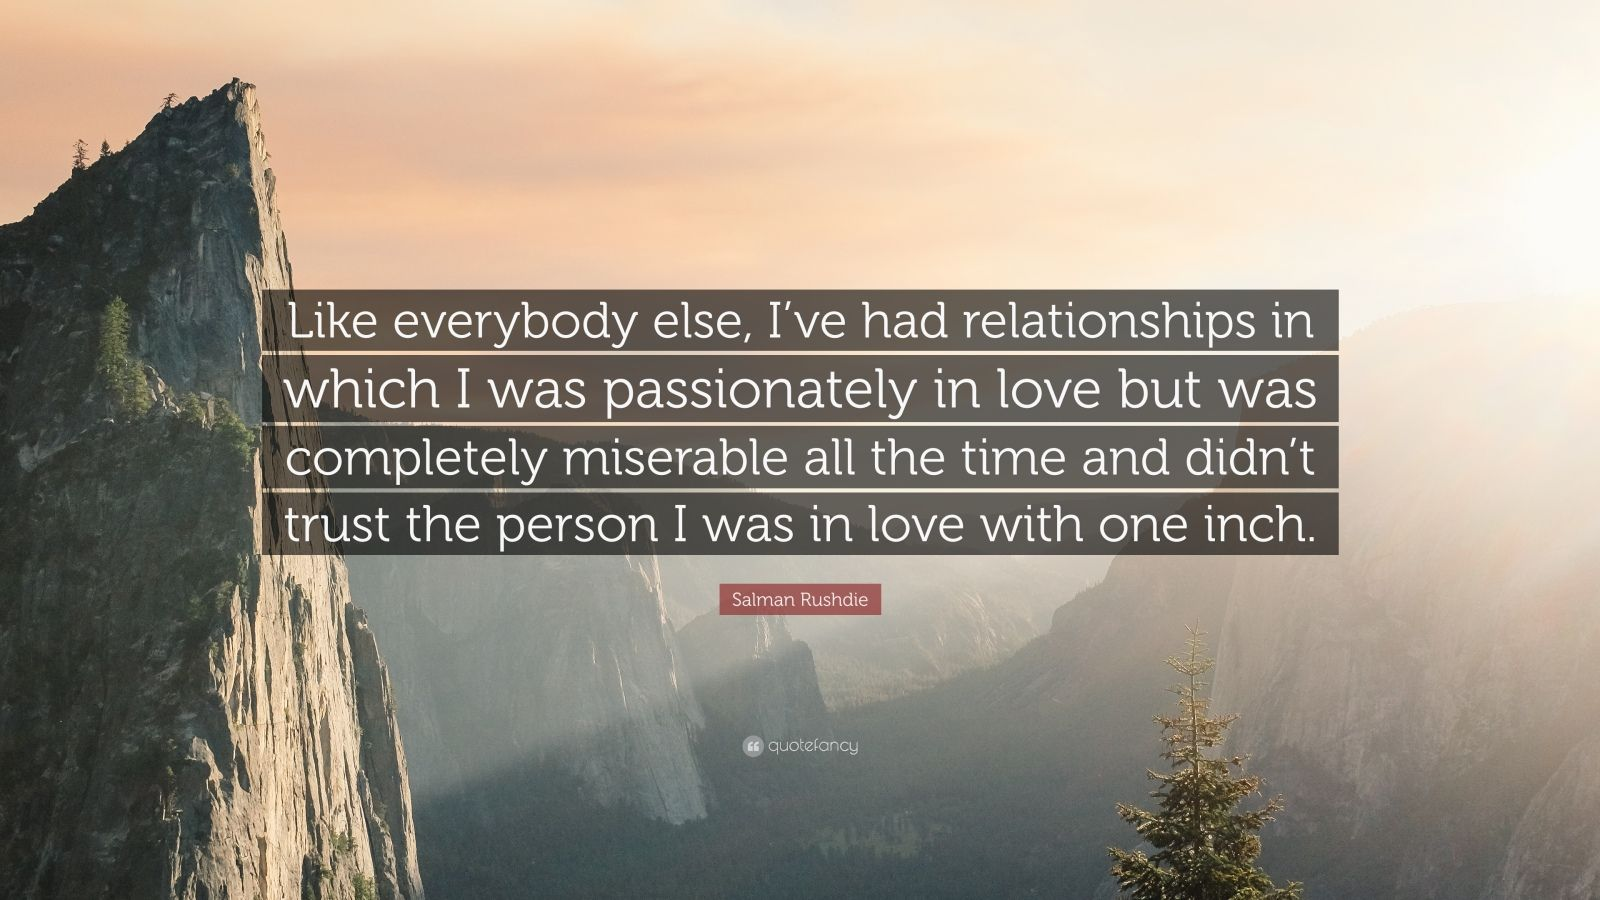 """Salman Rushdie Quote: """"Like everybody else, I've had relationships in which I was passionately in love but was completely miserable all the time and didn't trust the person I was in love with one inch."""""""